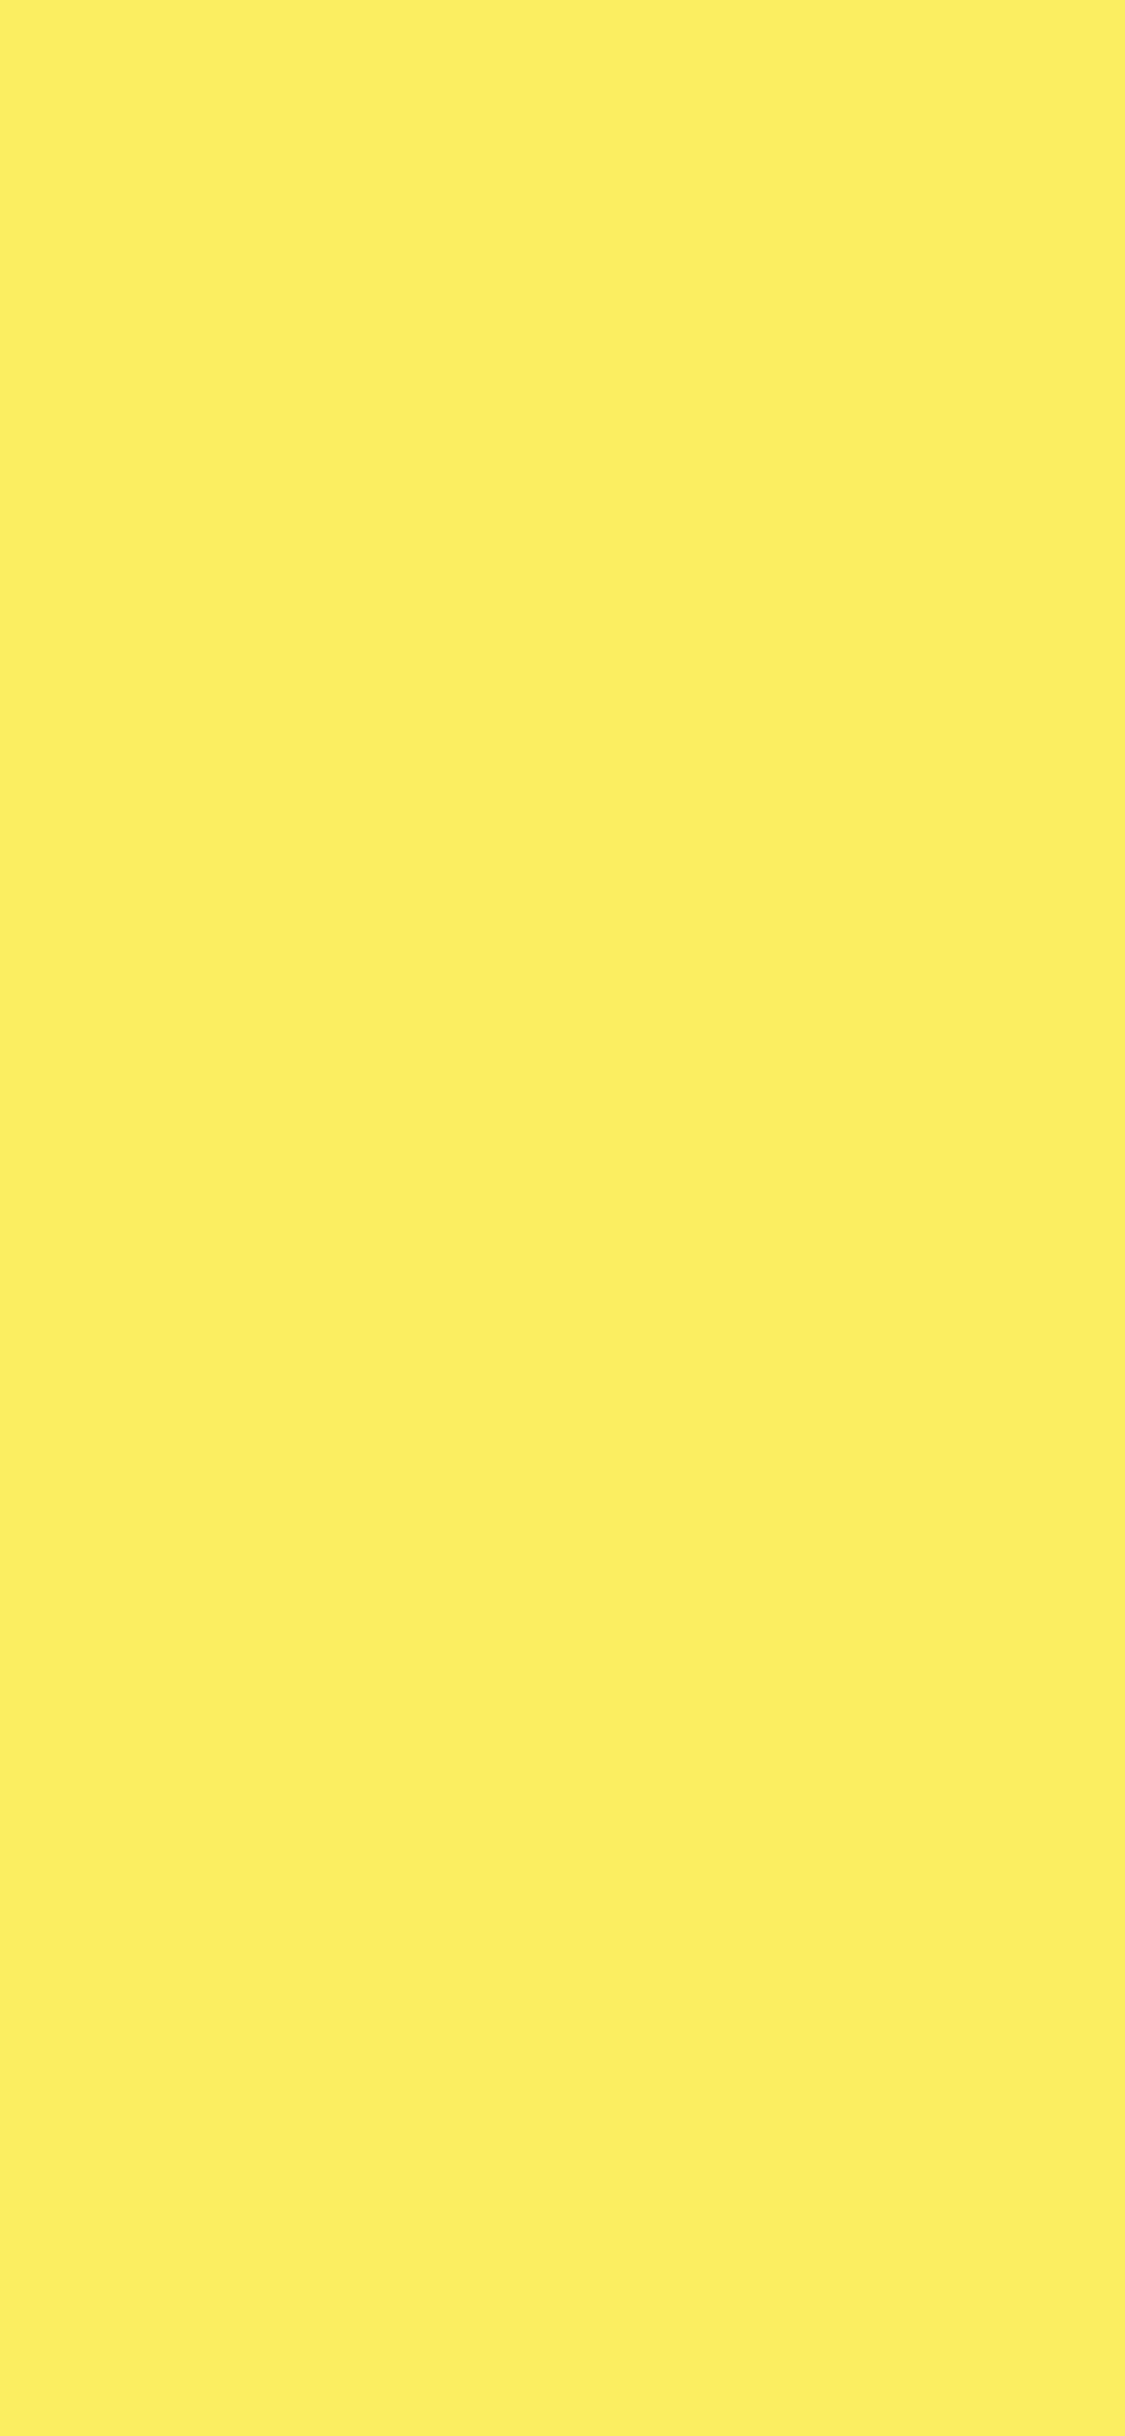 1125x2436 Maize Solid Color Background